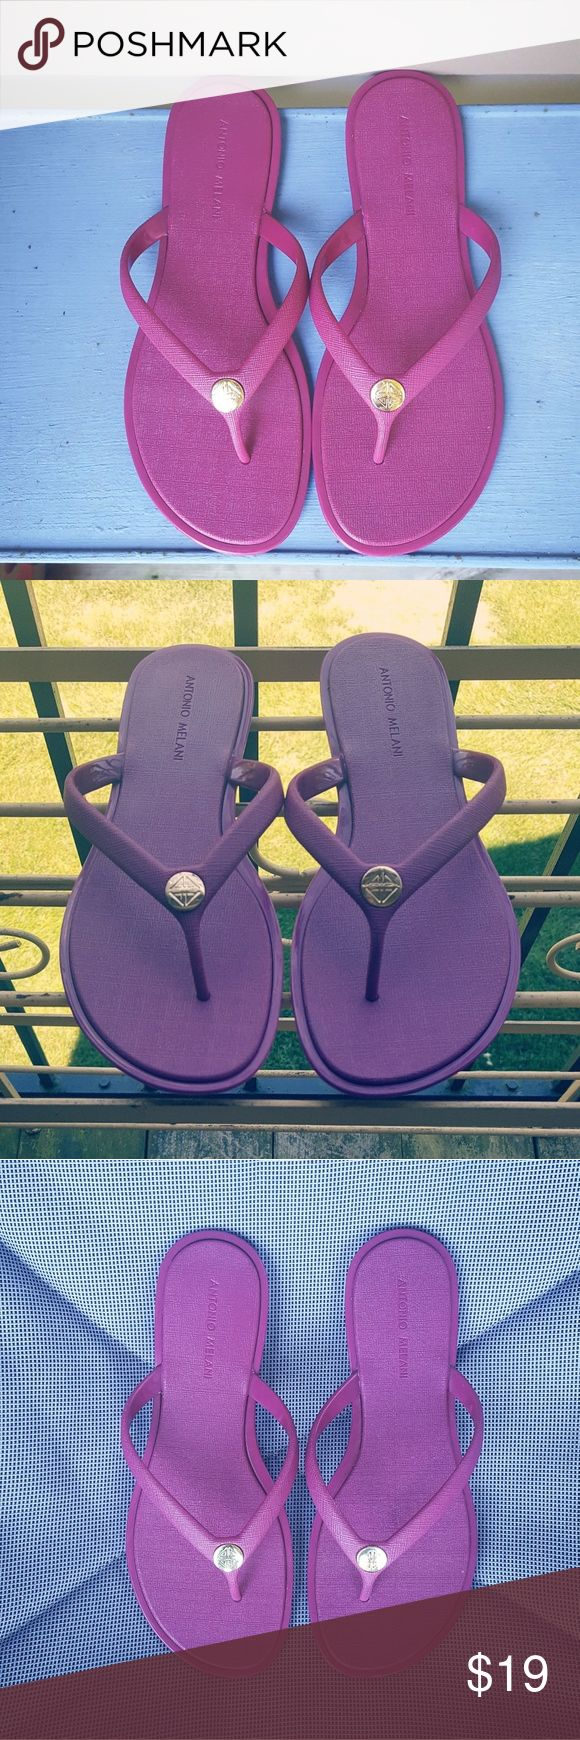 ANTONIO MELANI Magenta / Purple Flip Flops Antonio Melani Rubbery Sandals With Gold Emblem  Size 7  Awesome Condition!  Flat - no heel  Thanks for reading & have a pleasant day! ANTONIO MELANI Shoes Sandals